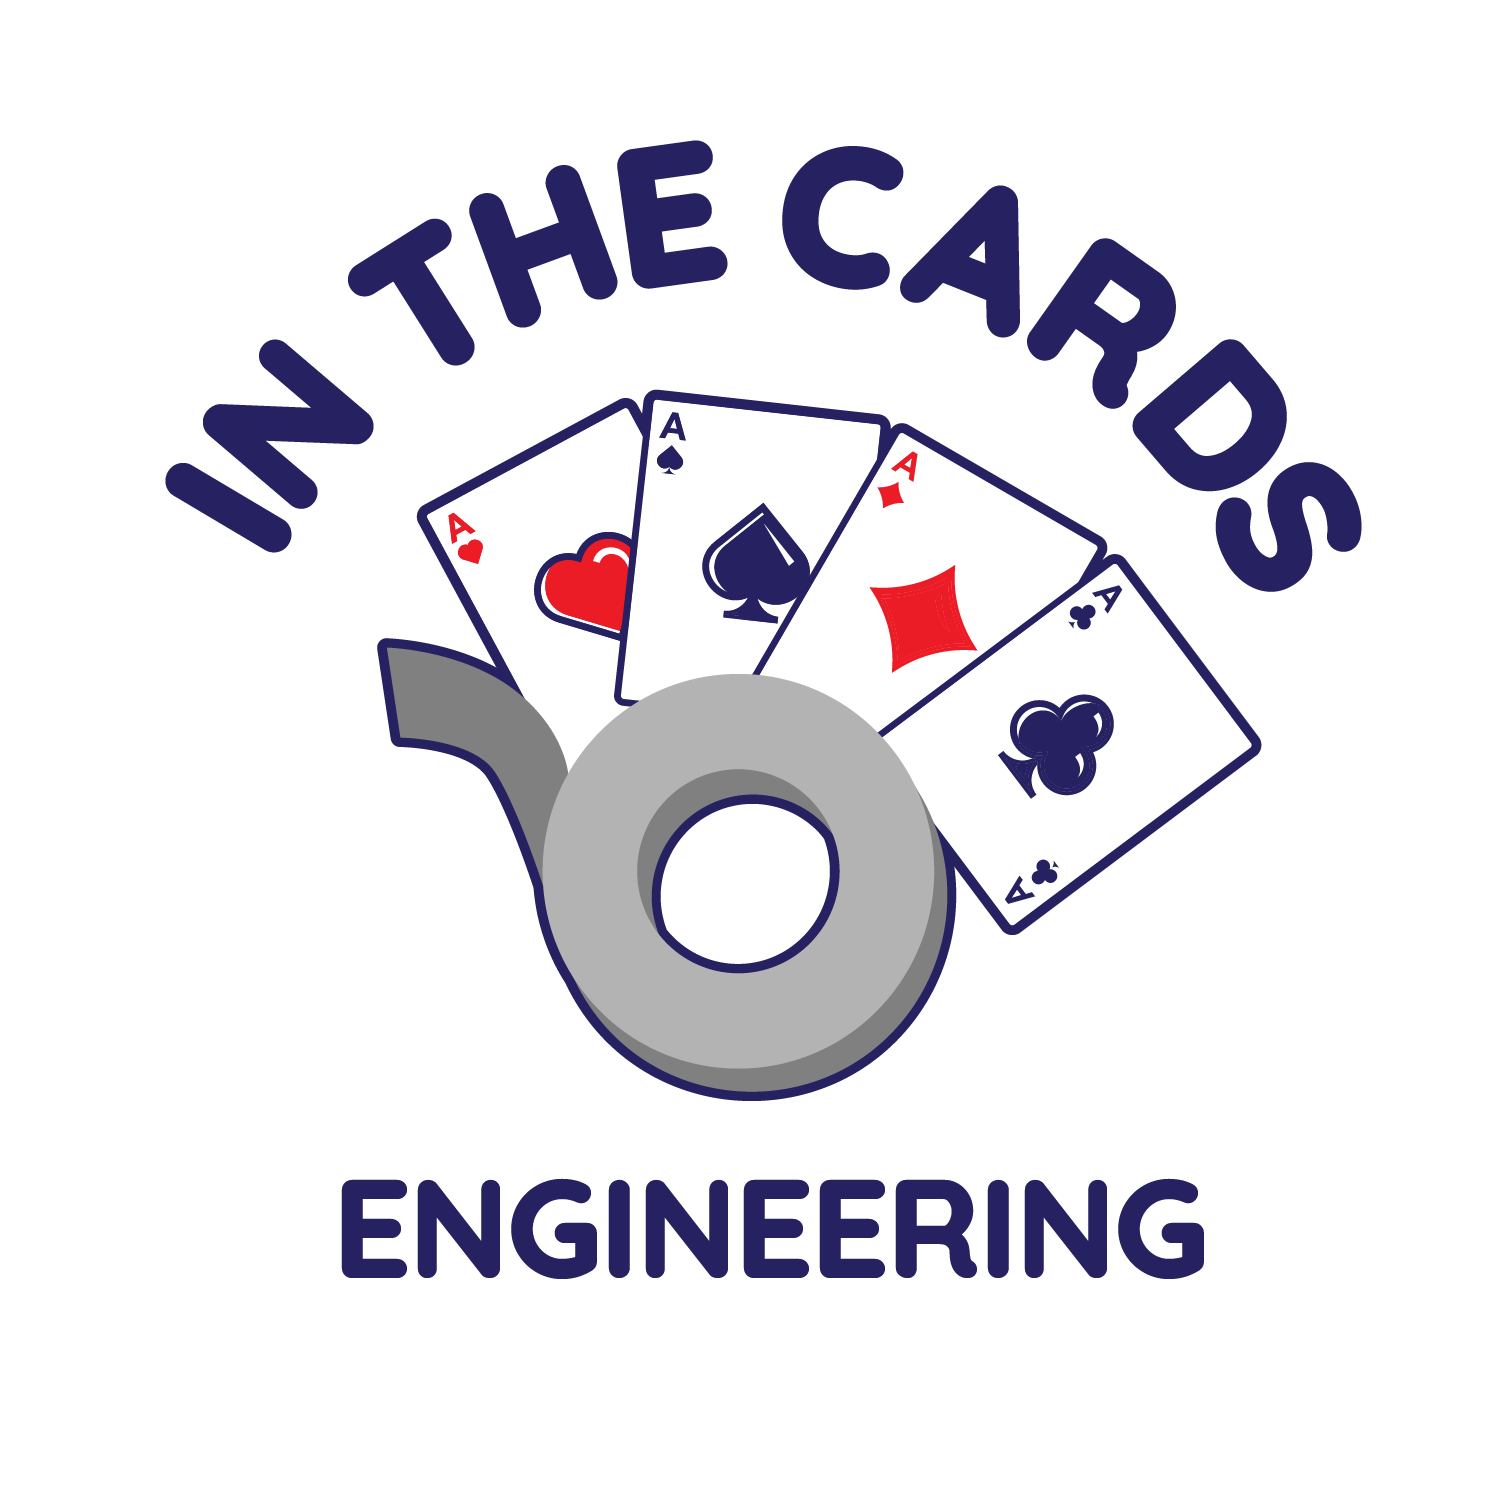 19 20 Challenge Logo In the Cards Engineering Dark RGB